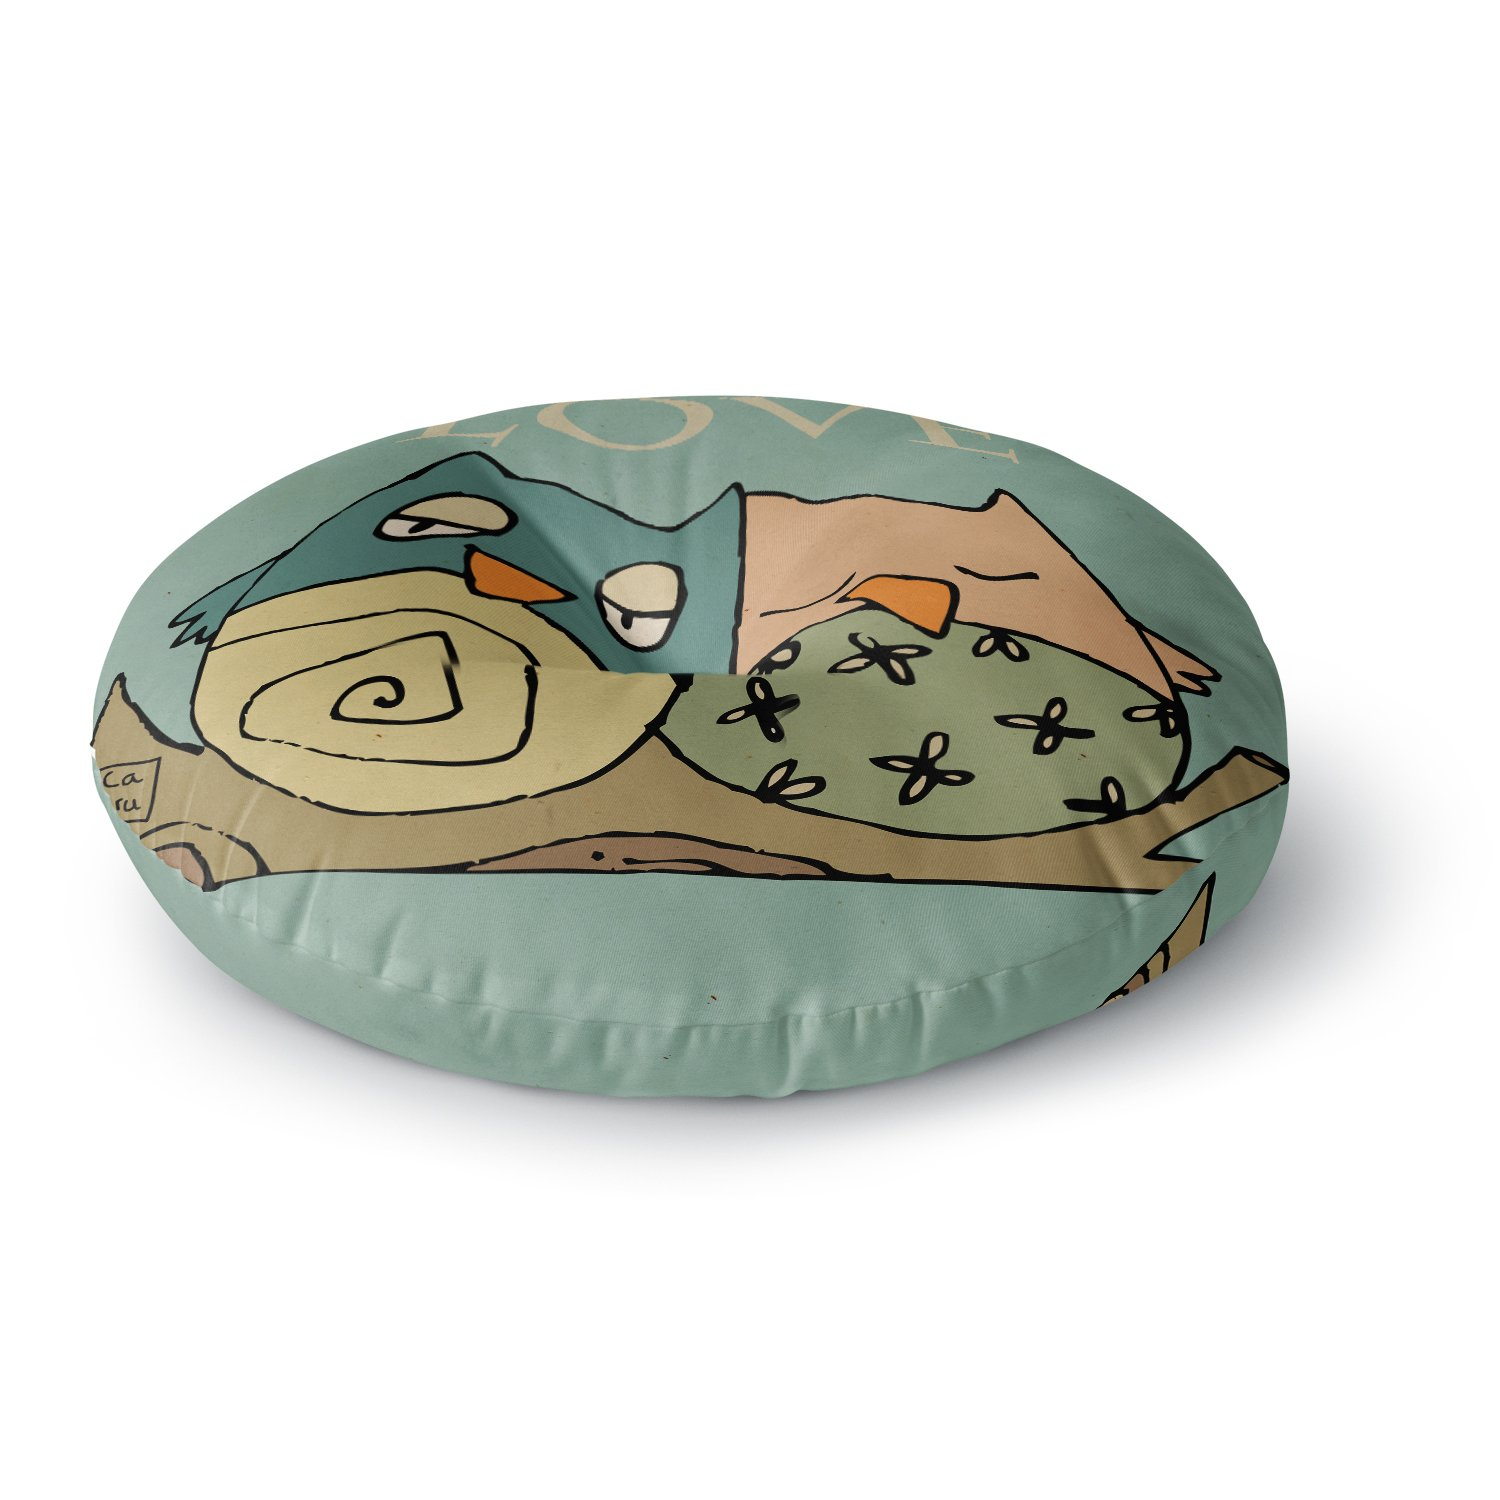 Kess InHouse Carina Povarchik Lechuzas Love Owls Green Round Floor Pillow 26' CP1024ARF02